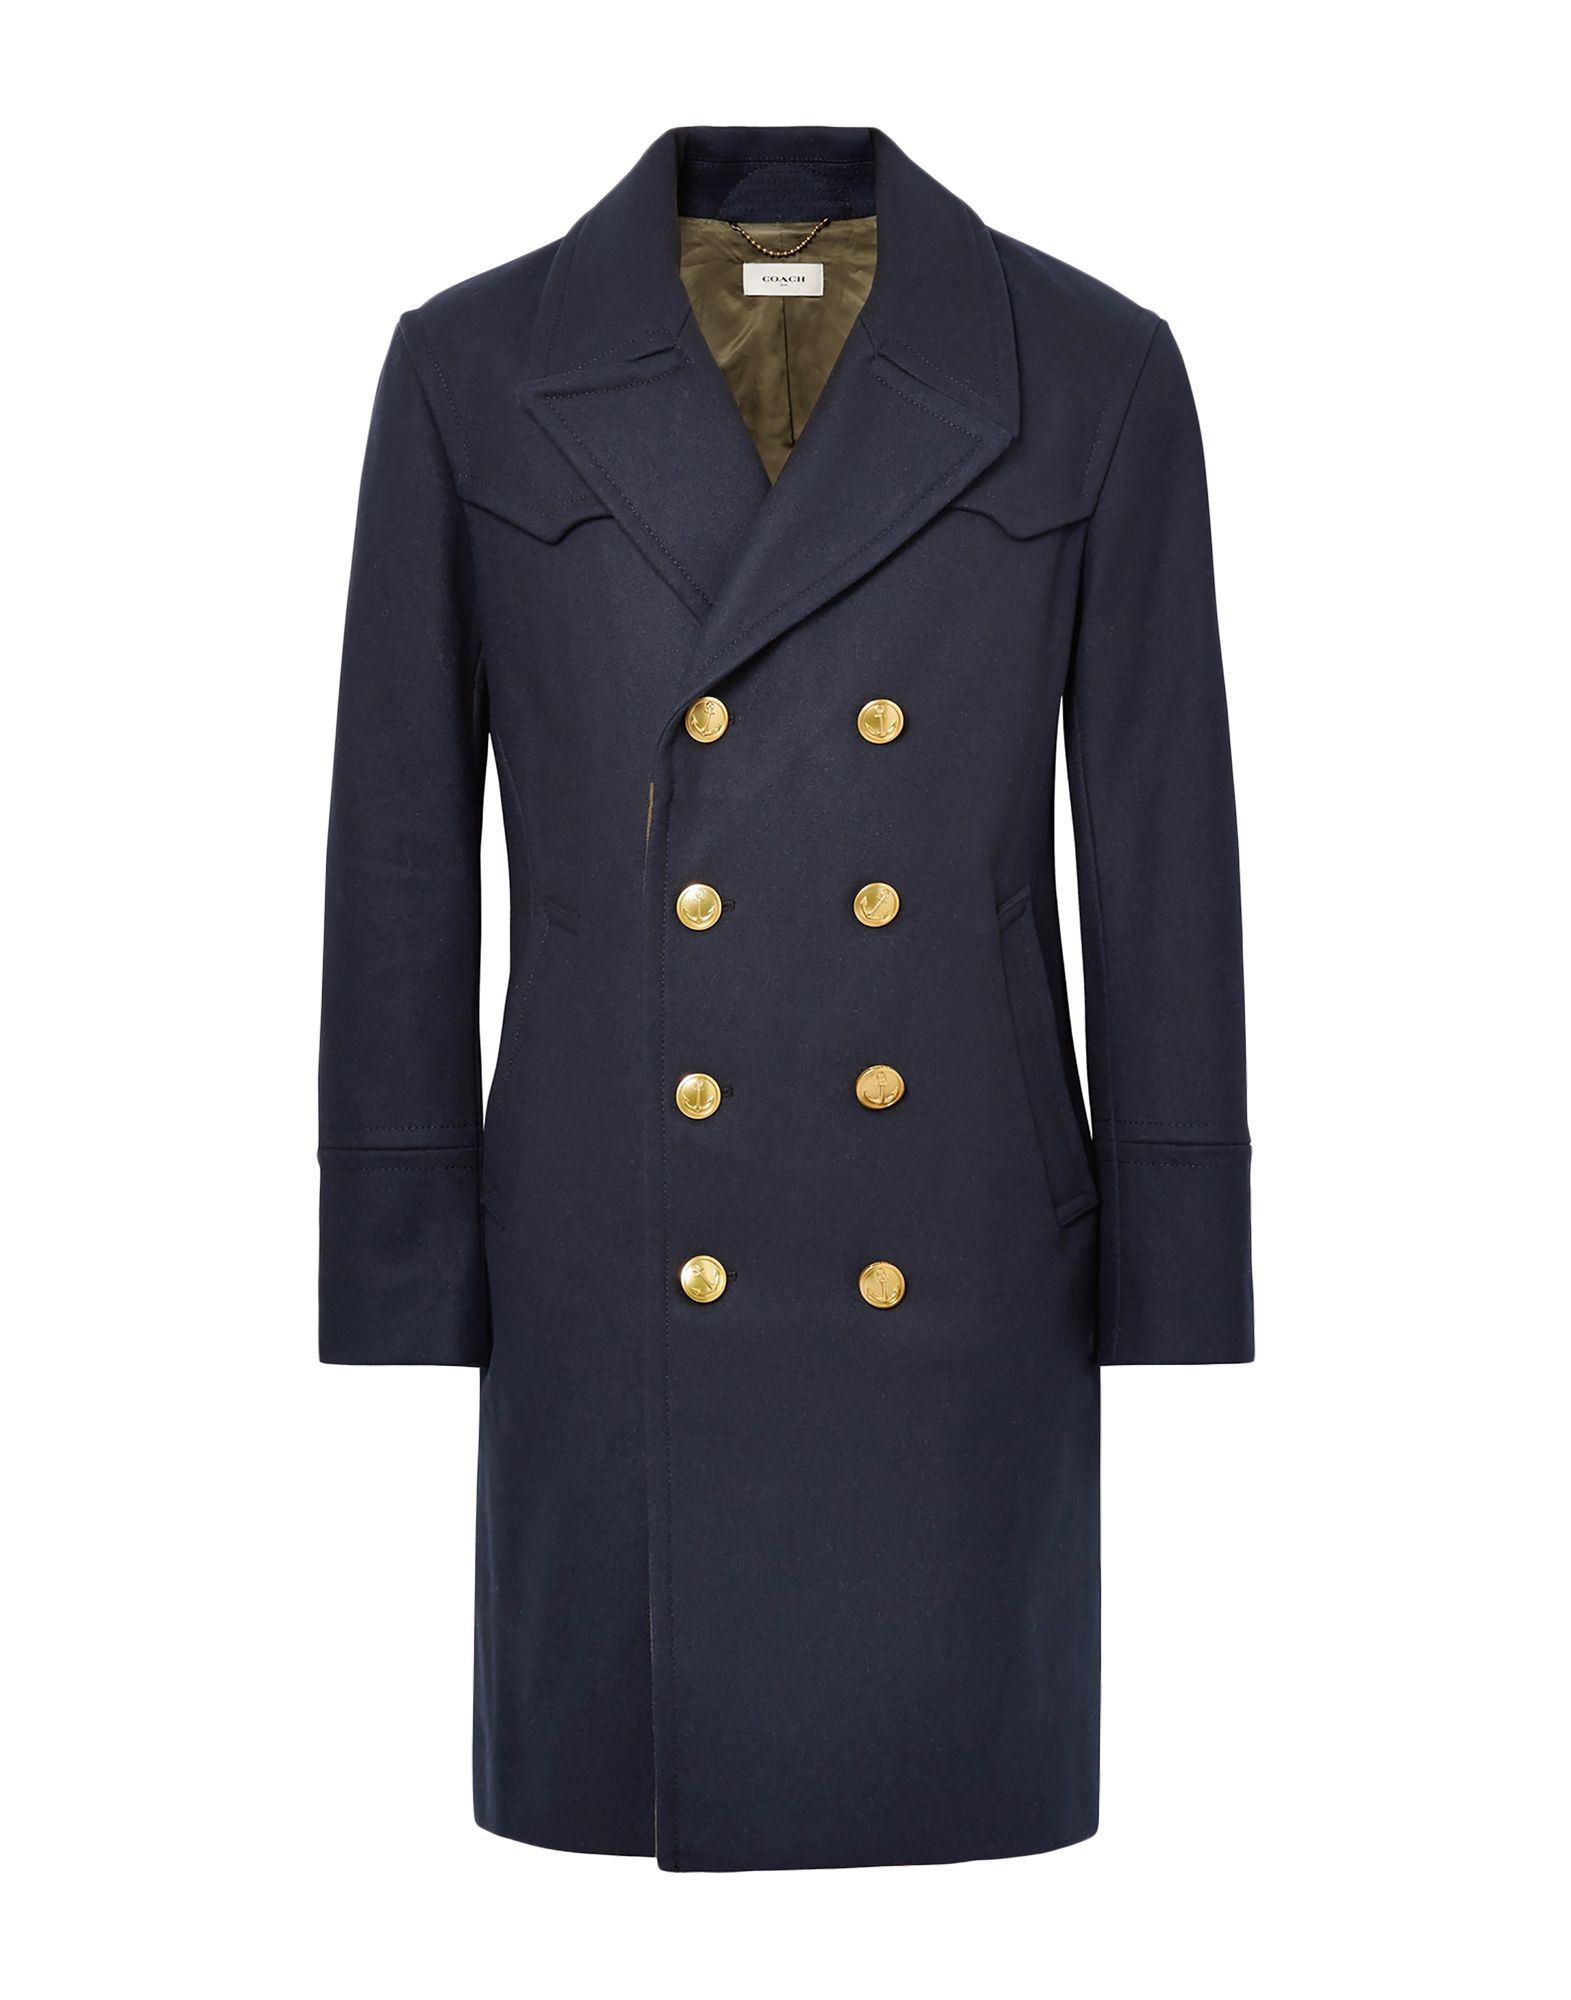 COACH Coats. baize, half-belt, solid color, multipockets, long sleeves, semi-lined, double-breasted, lapel collar, three inside pockets, rear slit. 80% Wool, 20% Nylon